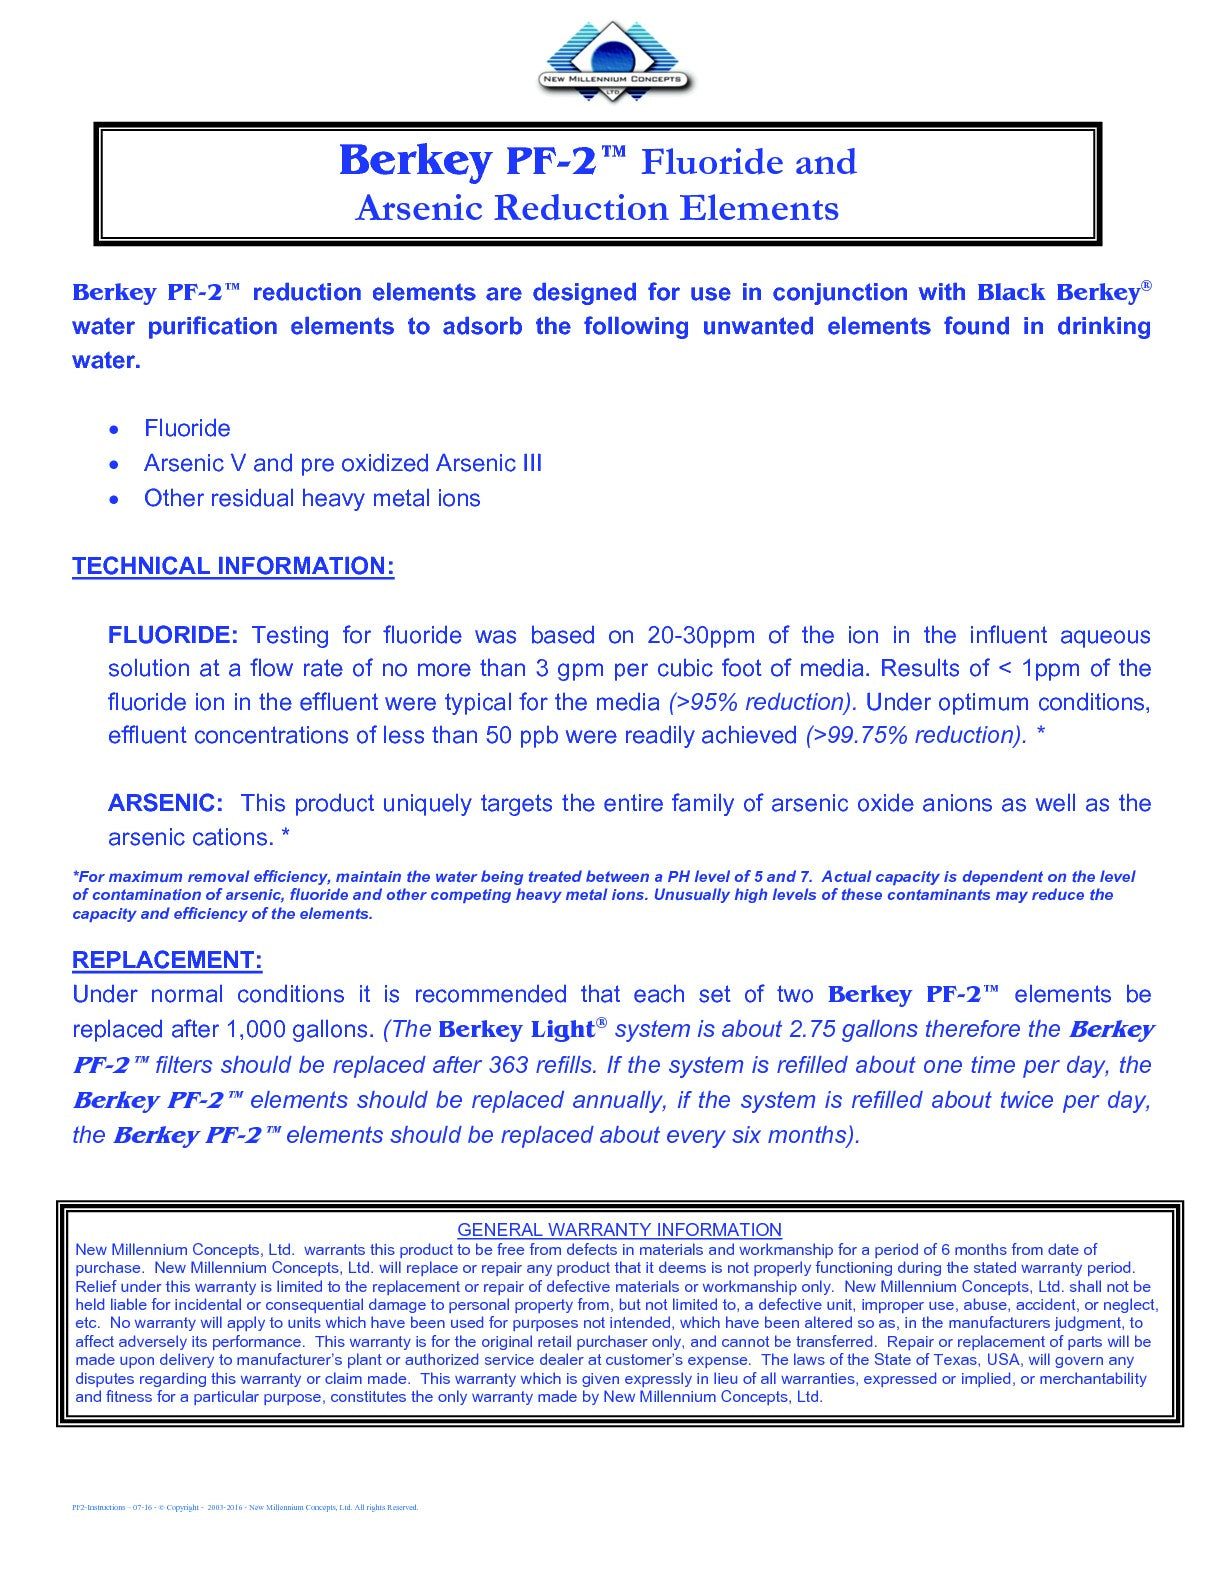 Berkey PF-2 Fluoride Reduction Elements Information